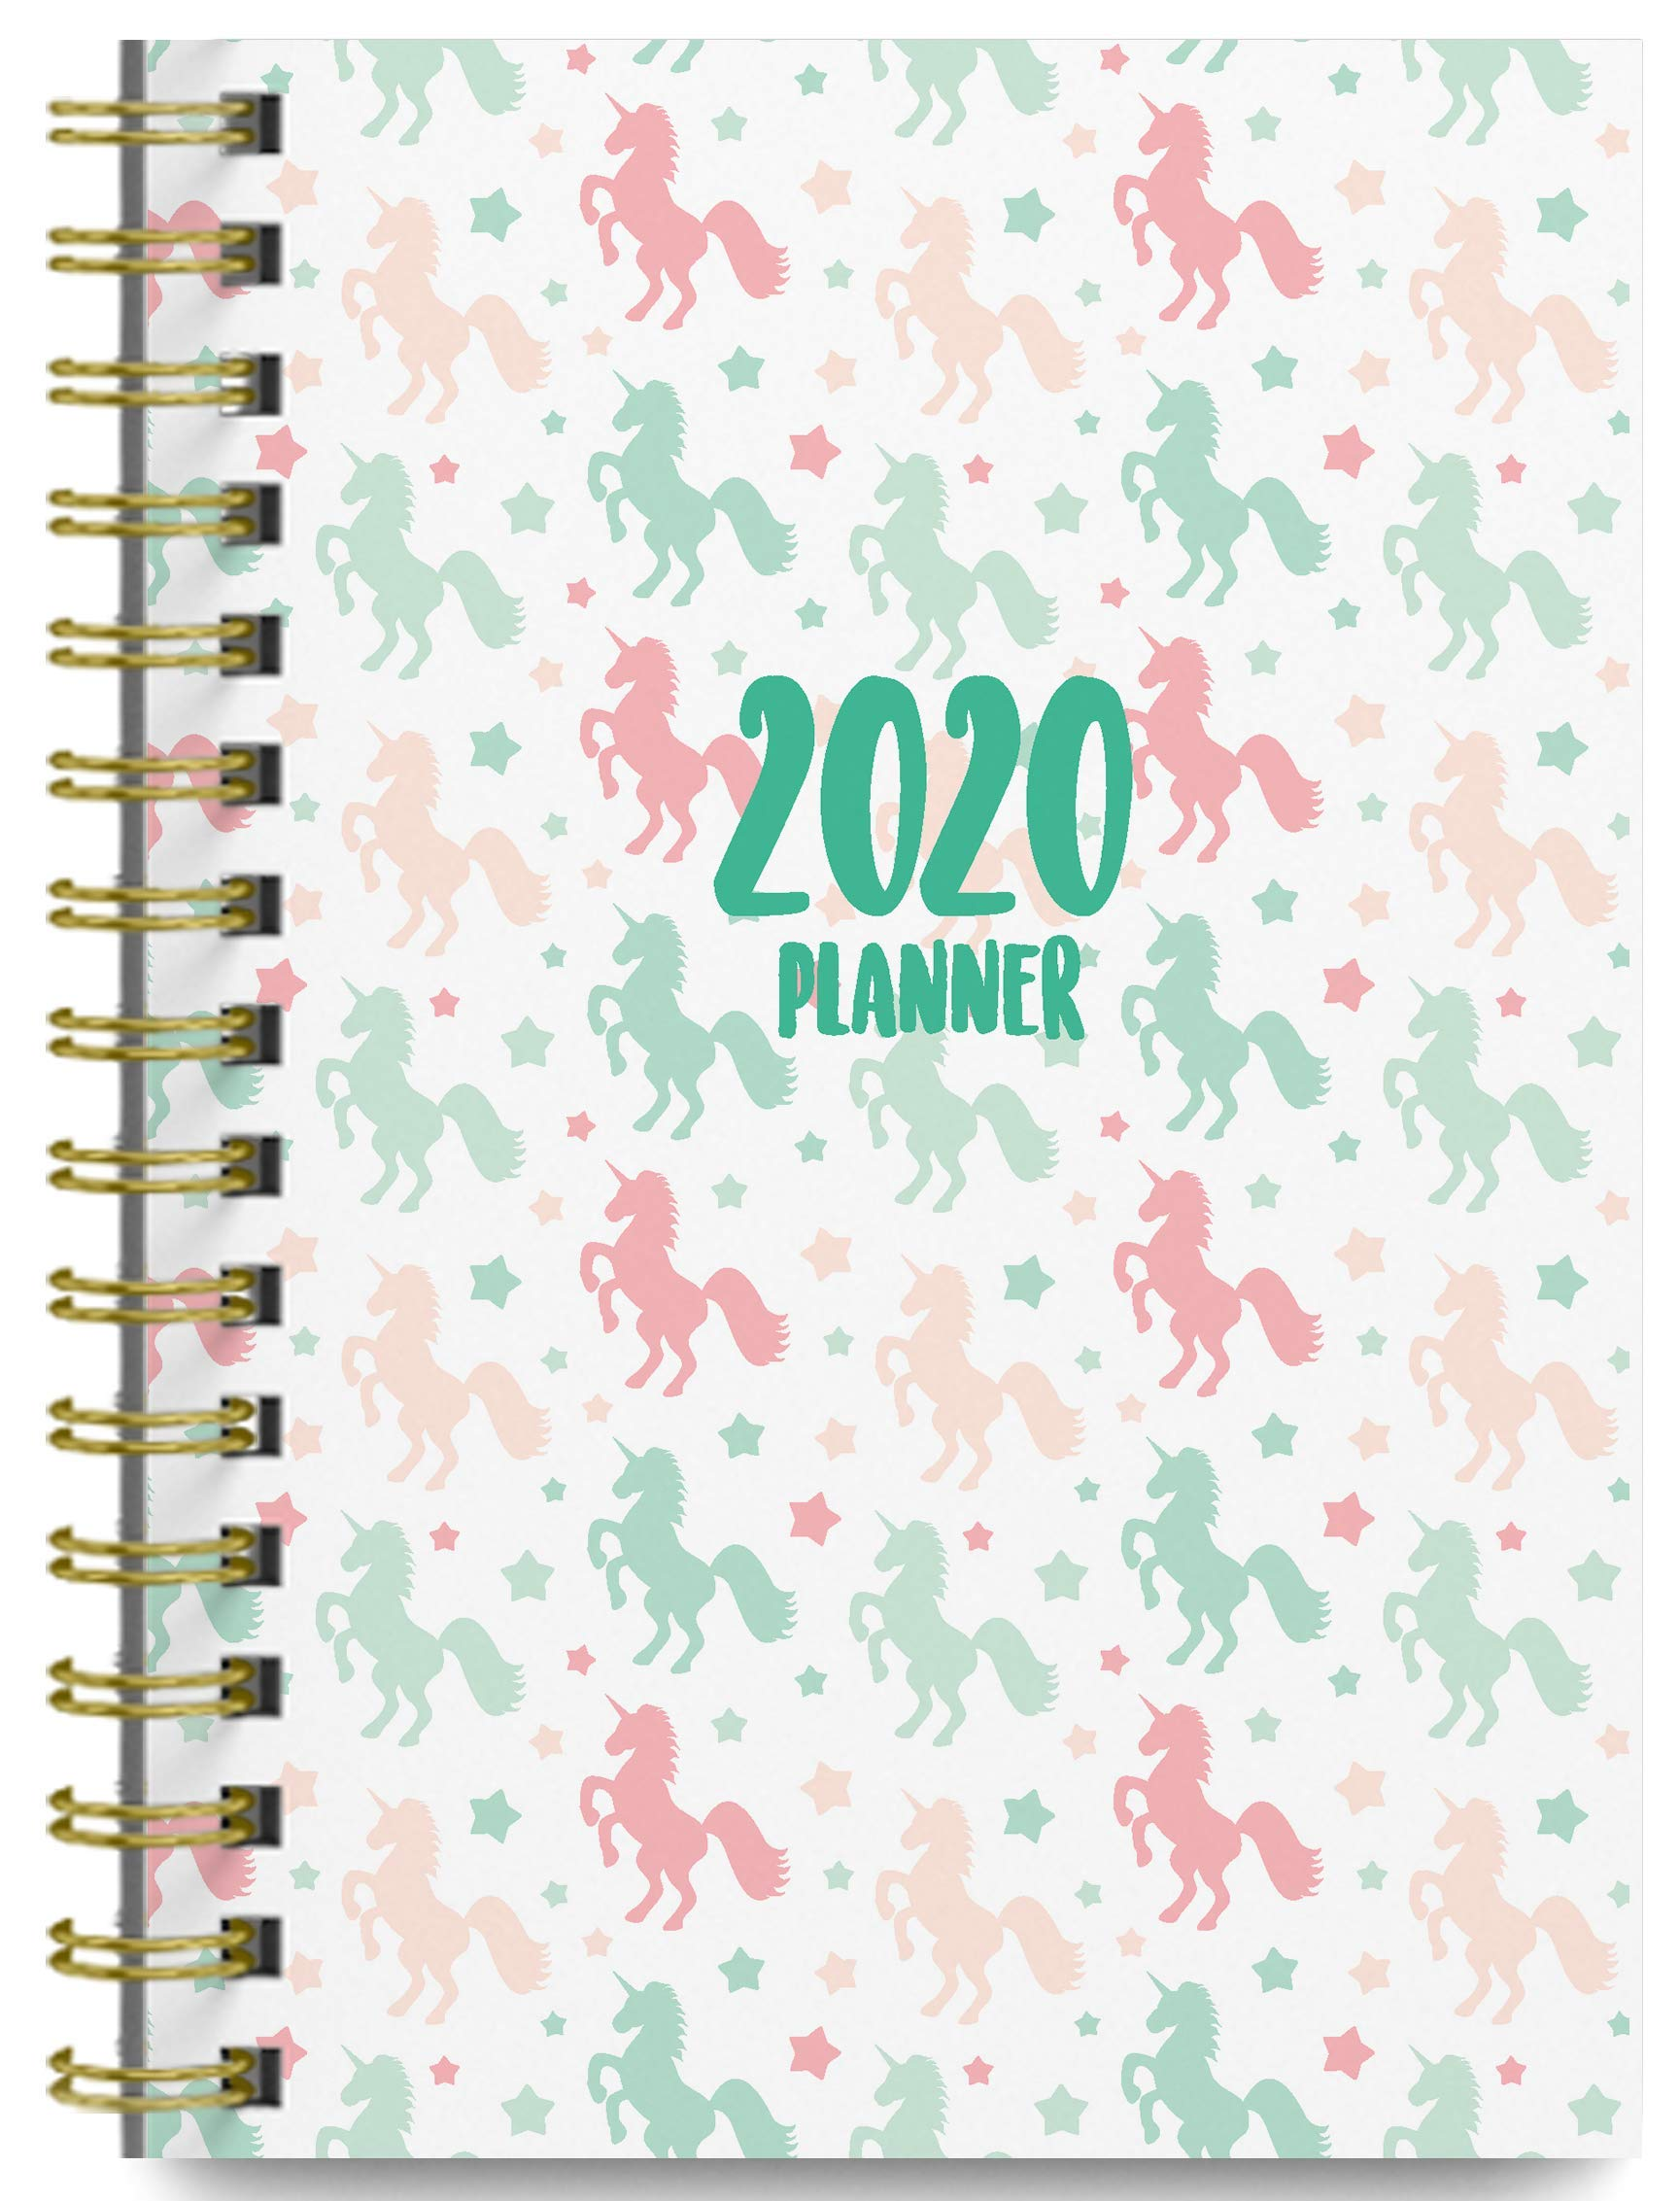 2020 Unicorns Soft Cover Academic Year Day Planner Book by Bright Day, Weekly Monthly Dated Agenda Spiral Bound Organizer, 16 Month Calendar 6.25 x 8.25 Inch,